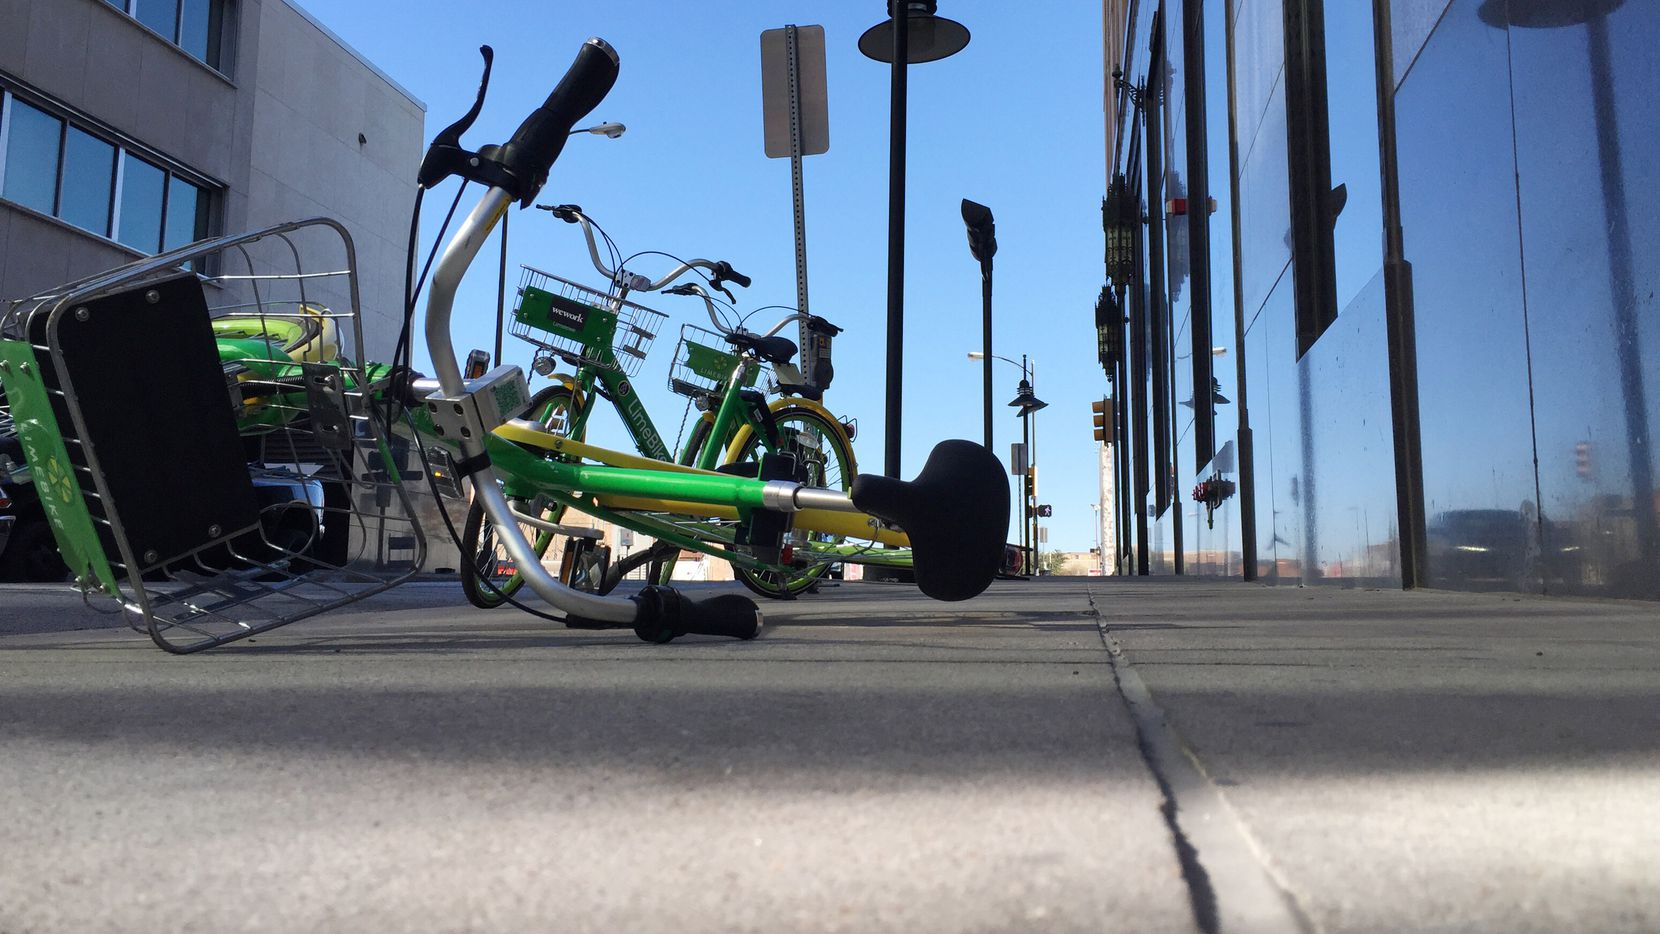 STOCK - A LimeBike lies on a sidewalk on Harwood St in downtown Dallas, Texas on December 27, 2017. (Irwin Thompson/Staff Photographer) Bike Share